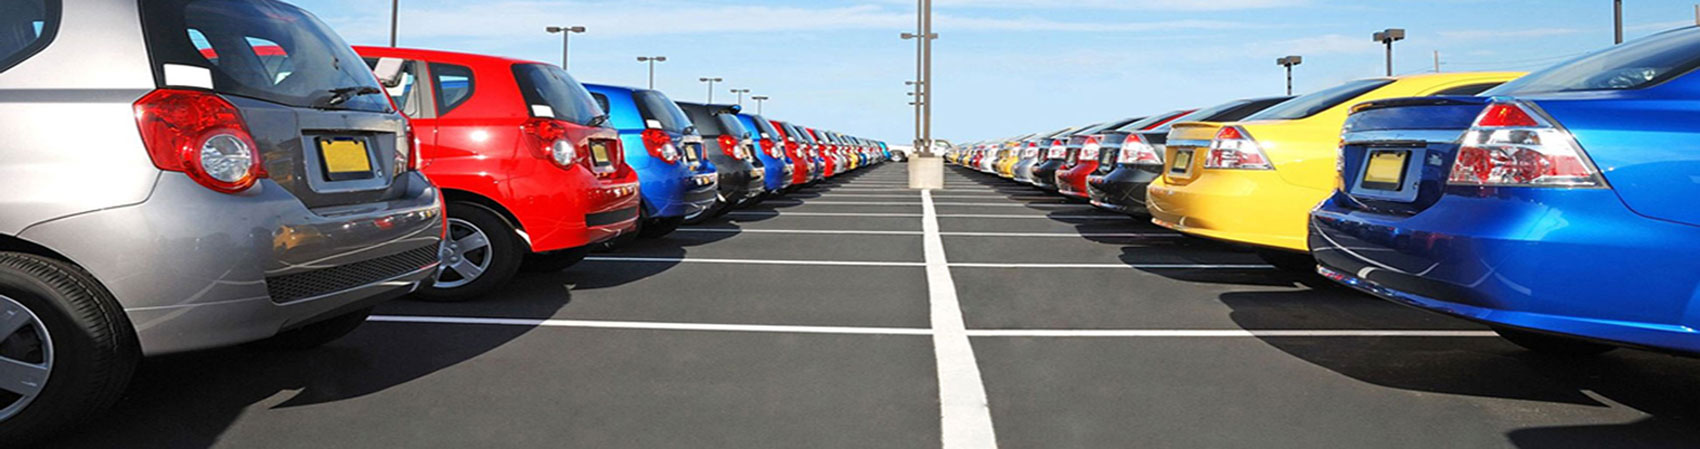 Reliable car parking service in perth airport the car port and spa cheap airport car parking within minutes free 24 hour shuttle transfer to all the perth airport terminals solutioingenieria Choice Image